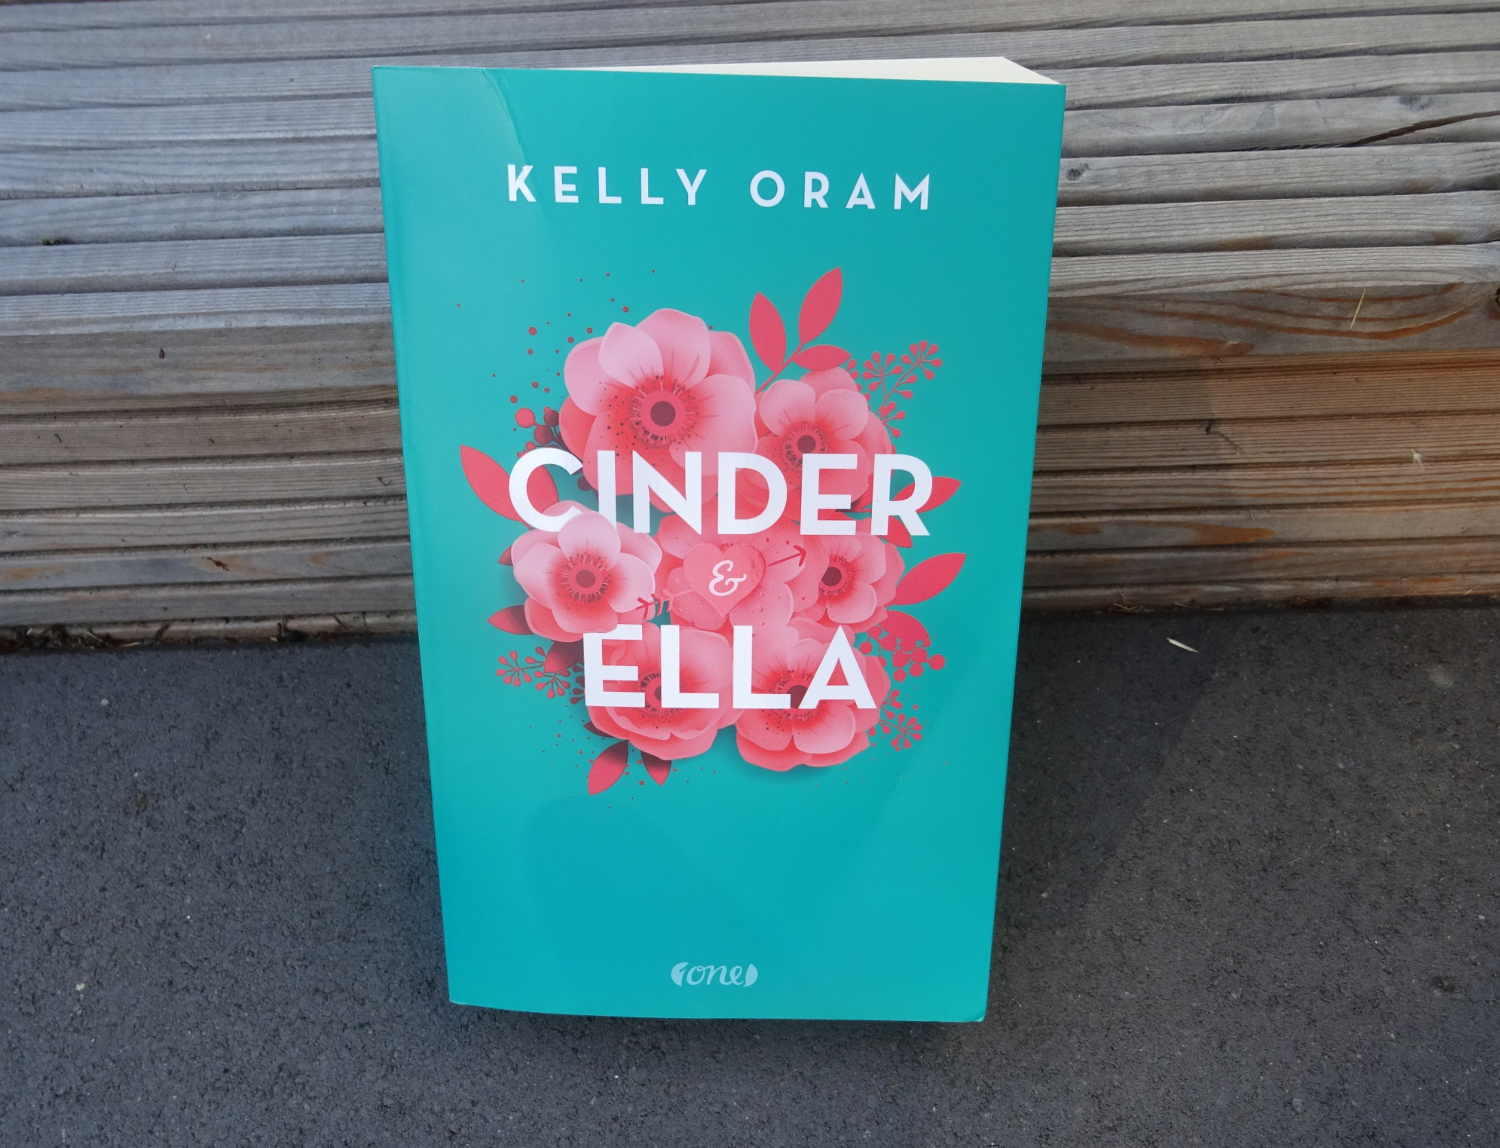 Cinder & Ella ~ Kelly Oram